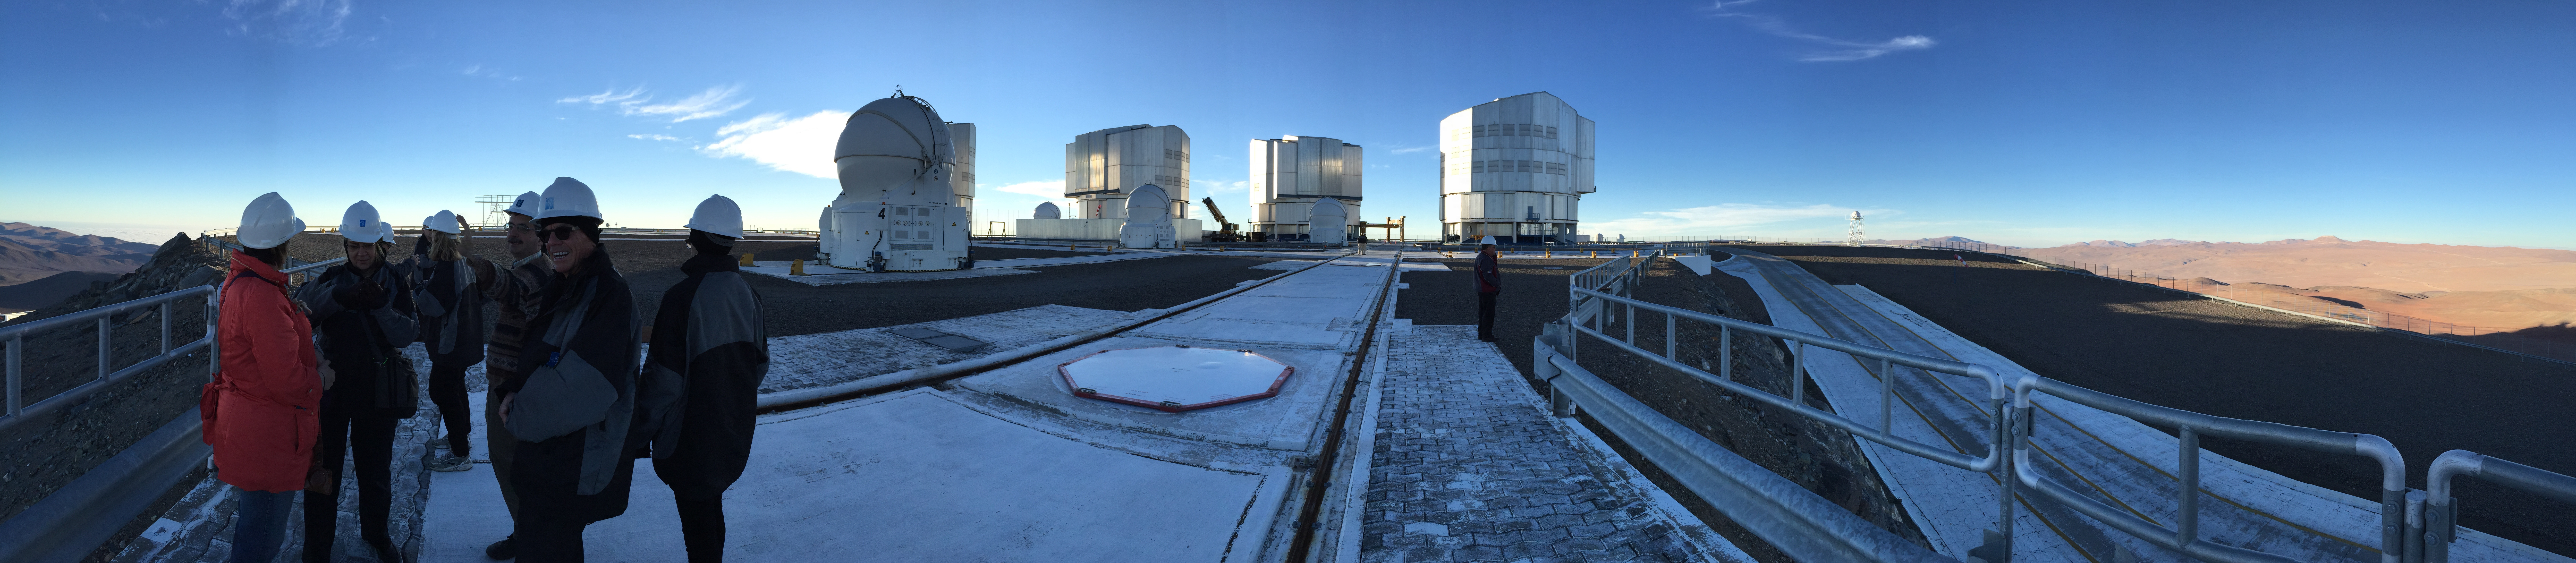 The VLT consists of four 8 meter telescopes that can be used separately or linked together as a giant interferometer